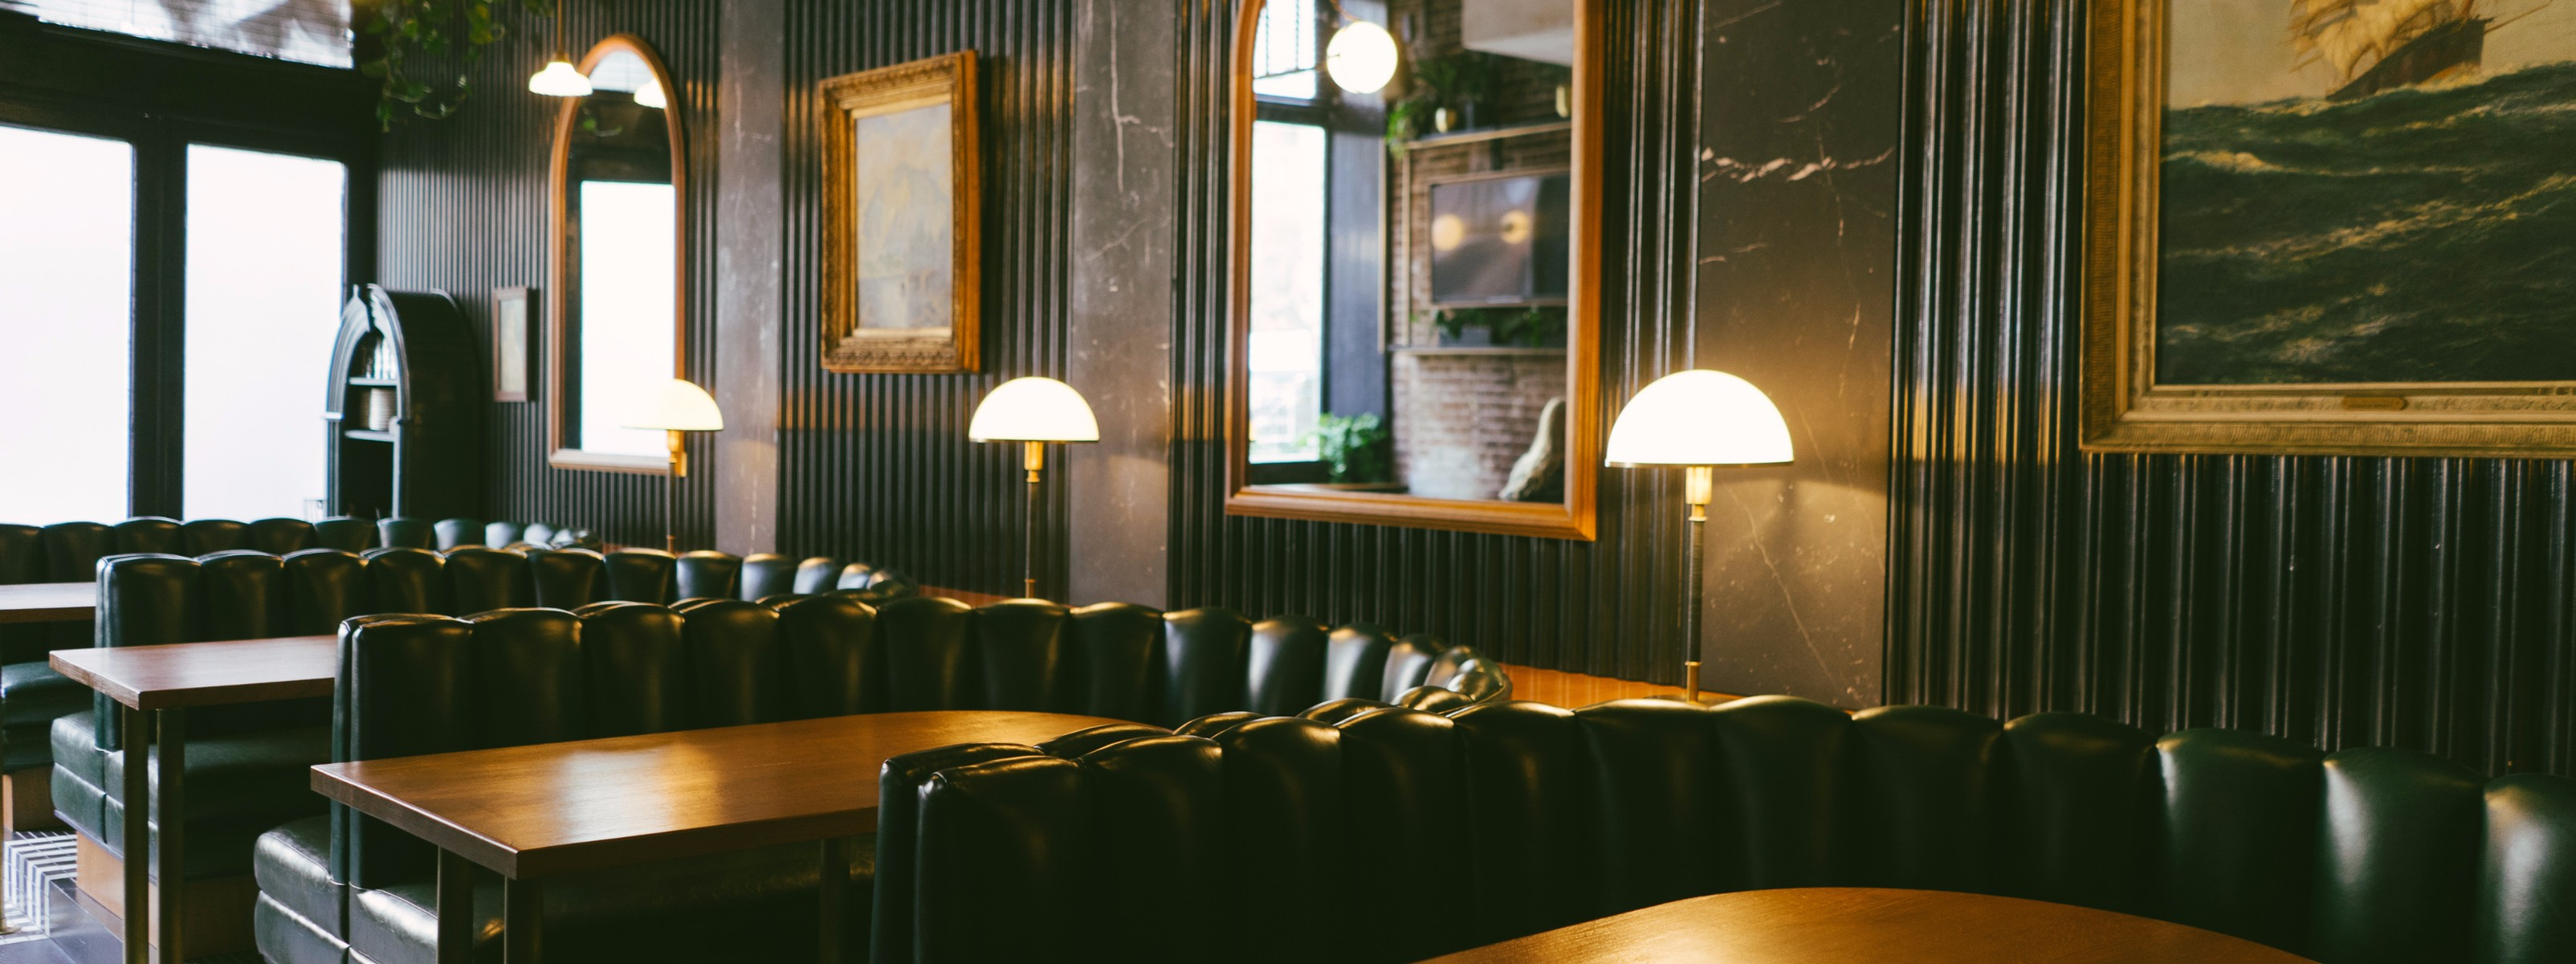 The Best Bars For Big Groups - New York - The Infatuation